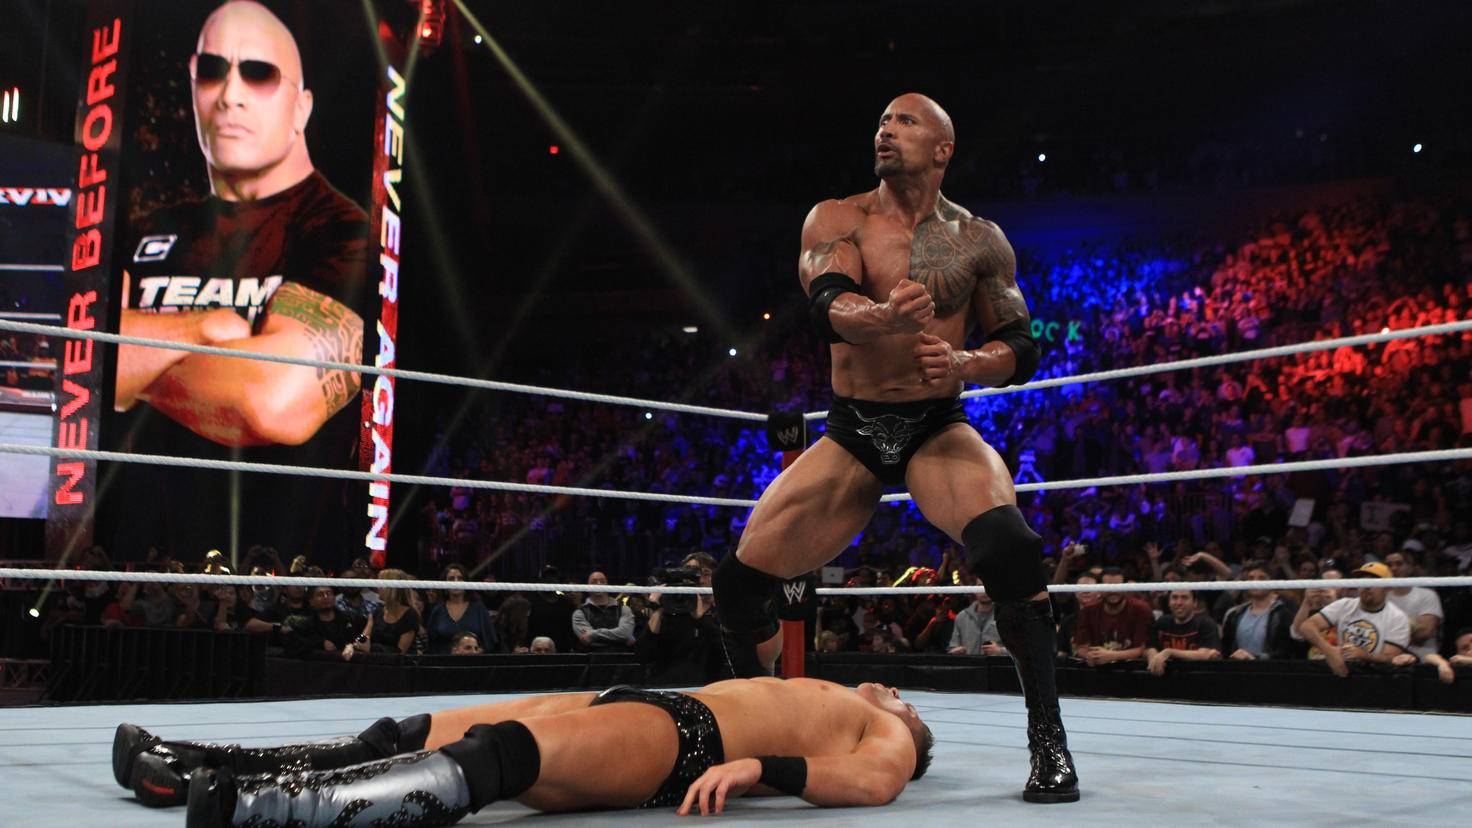 Dwayne Johnson-WrestleMania 28296000 picture alliance 2011